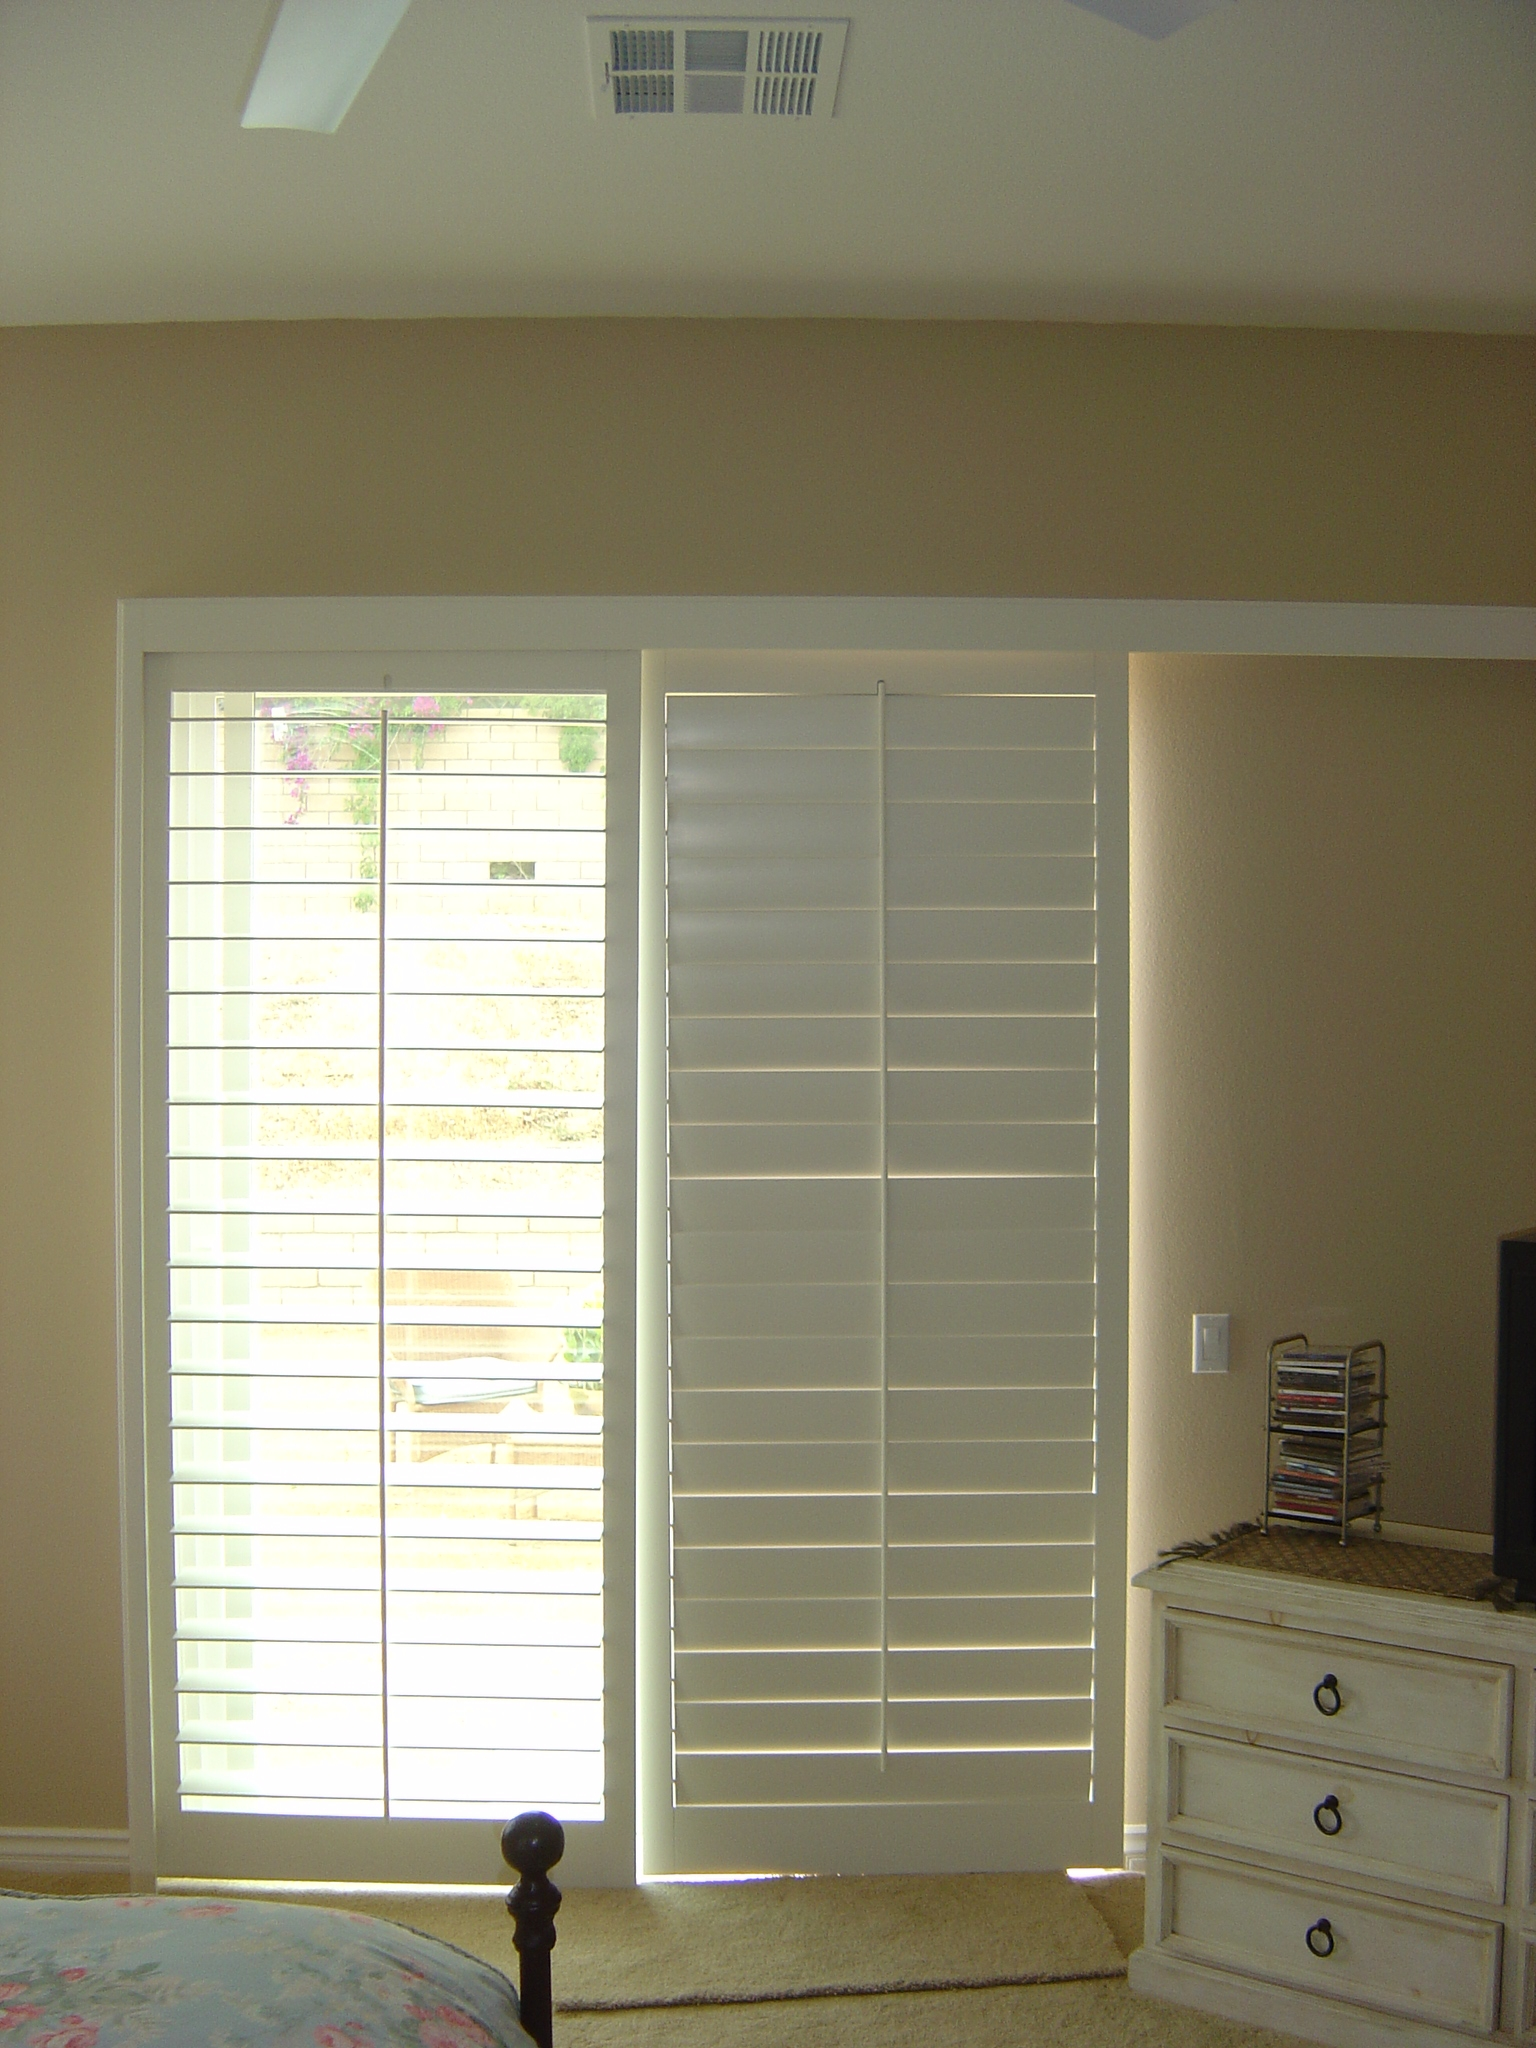 Window Covering Ideas For Sliding Glass DoorsWindow Covering Ideas For Sliding Glass Doors